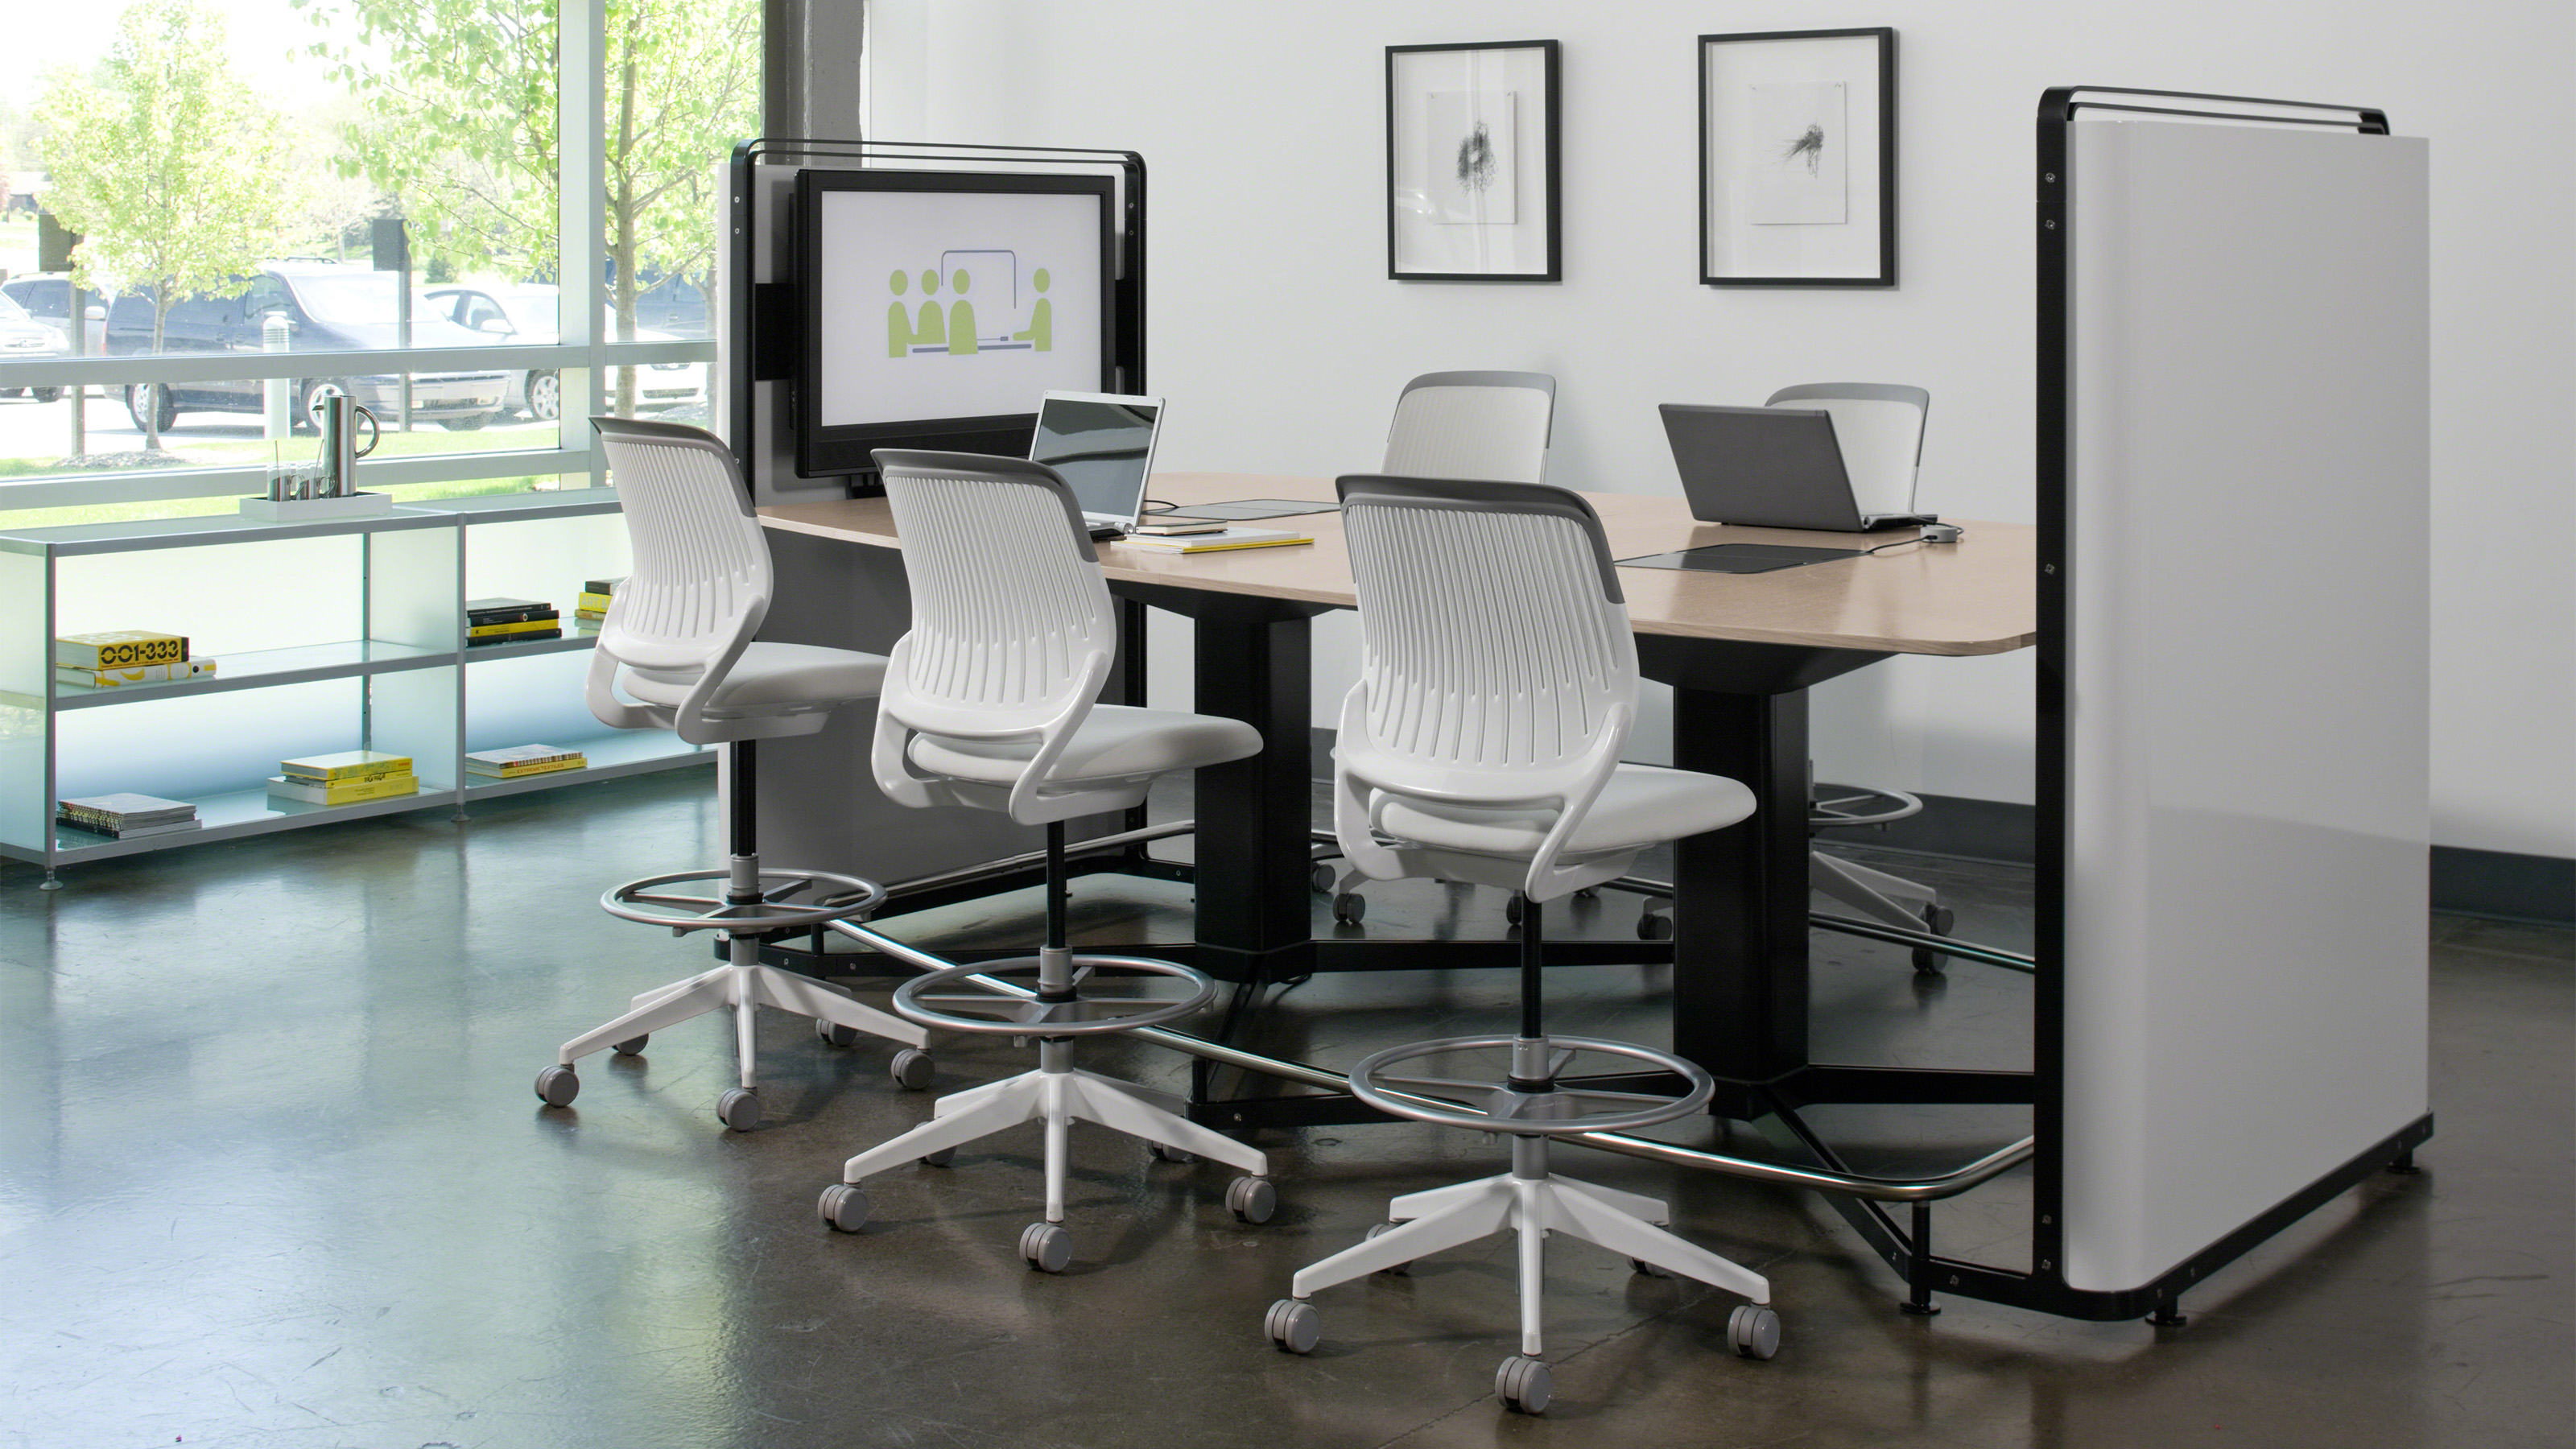 Cobi Office Chairs Collaborative Seating Steelcase